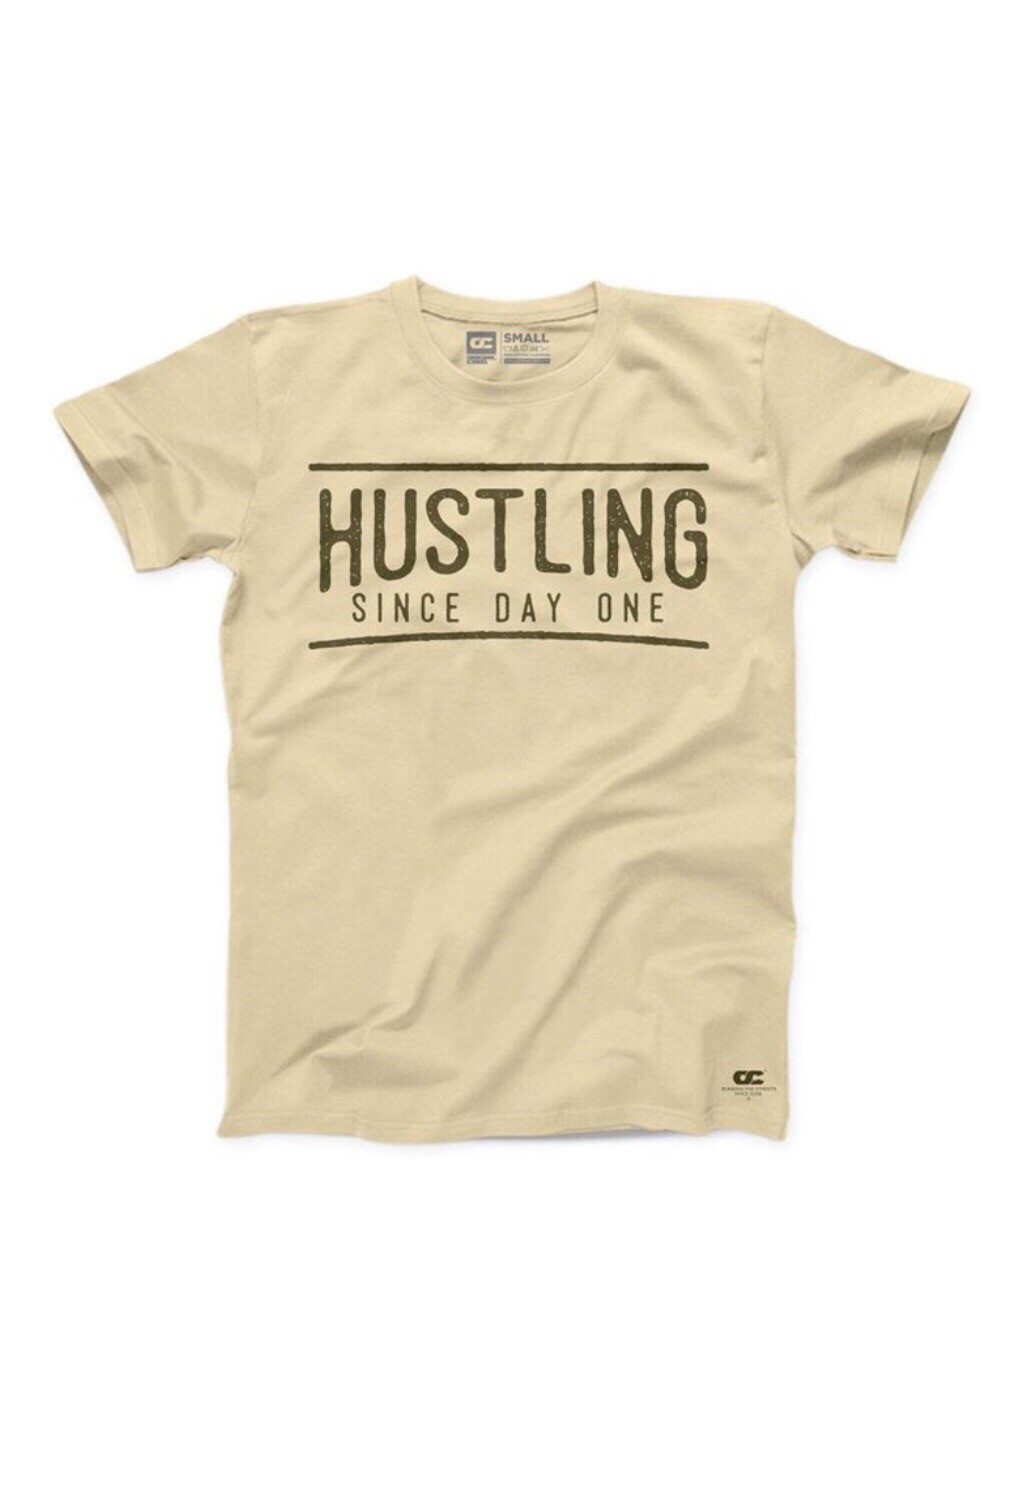 OC - HUSTLING SINCE DAY ONE TEE